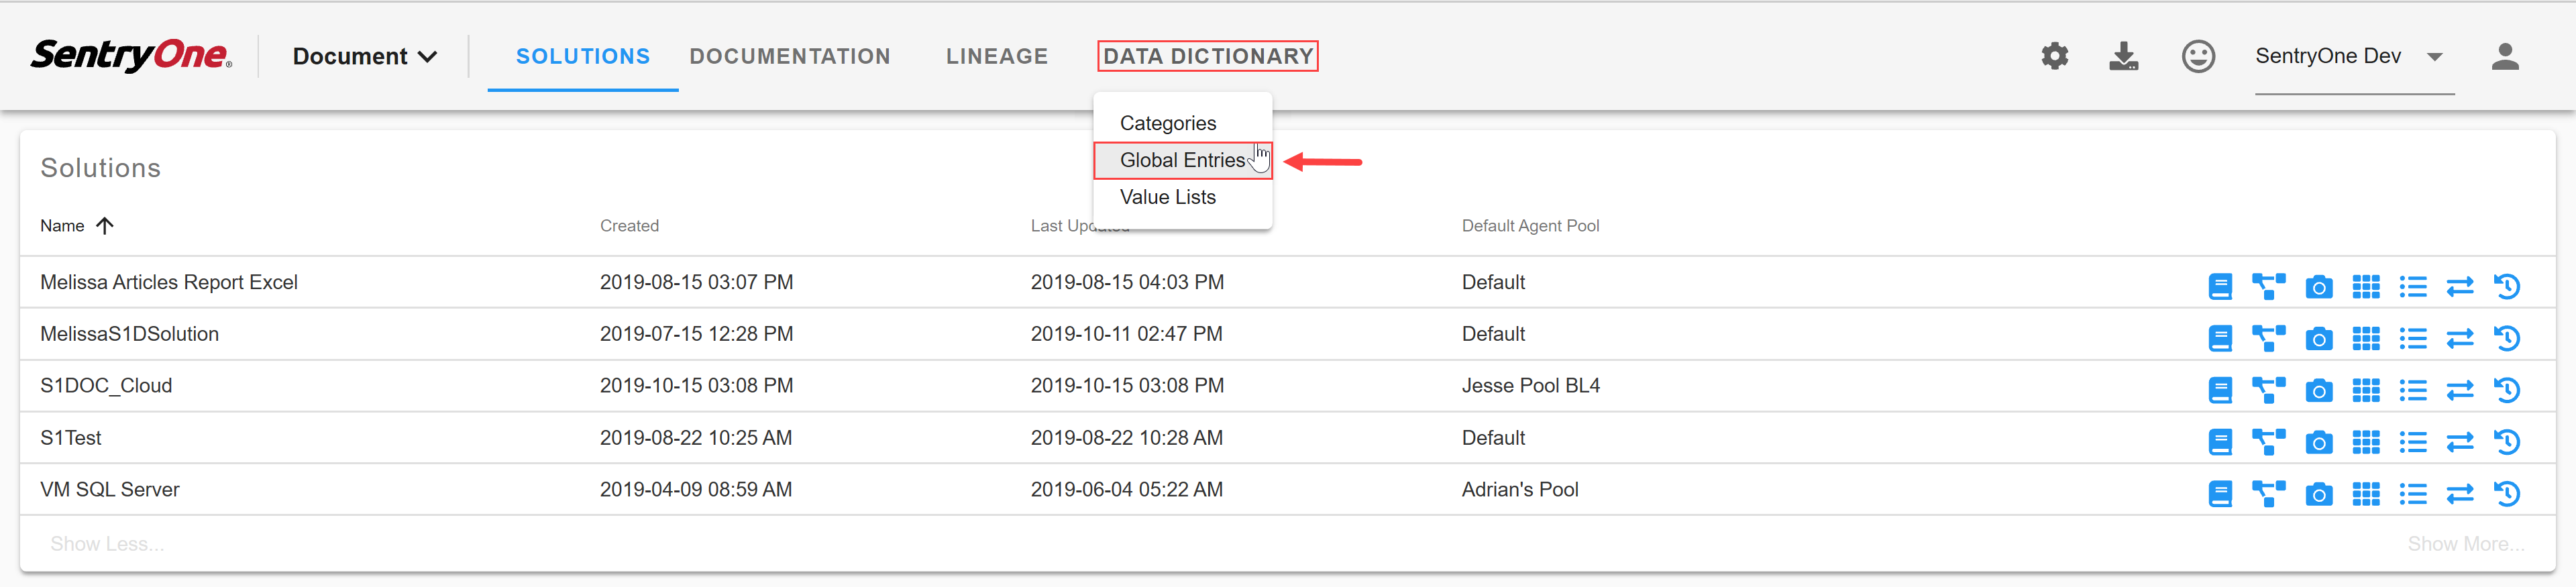 SentryOne Document select Data Dictionary Global Entries